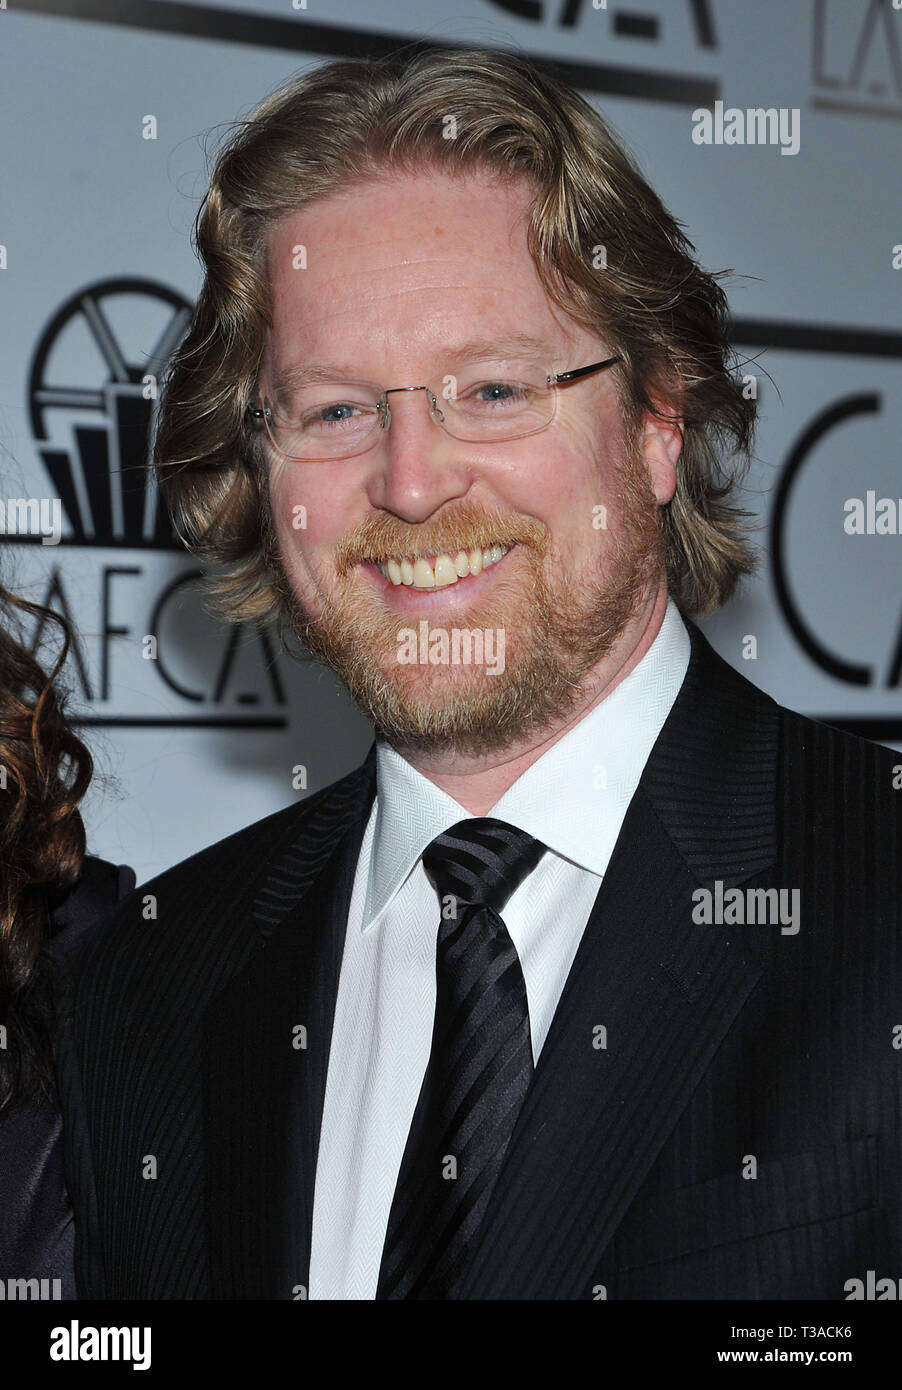 Page 2 Andrew Stanton High Resolution Stock Photography And Images Alamy